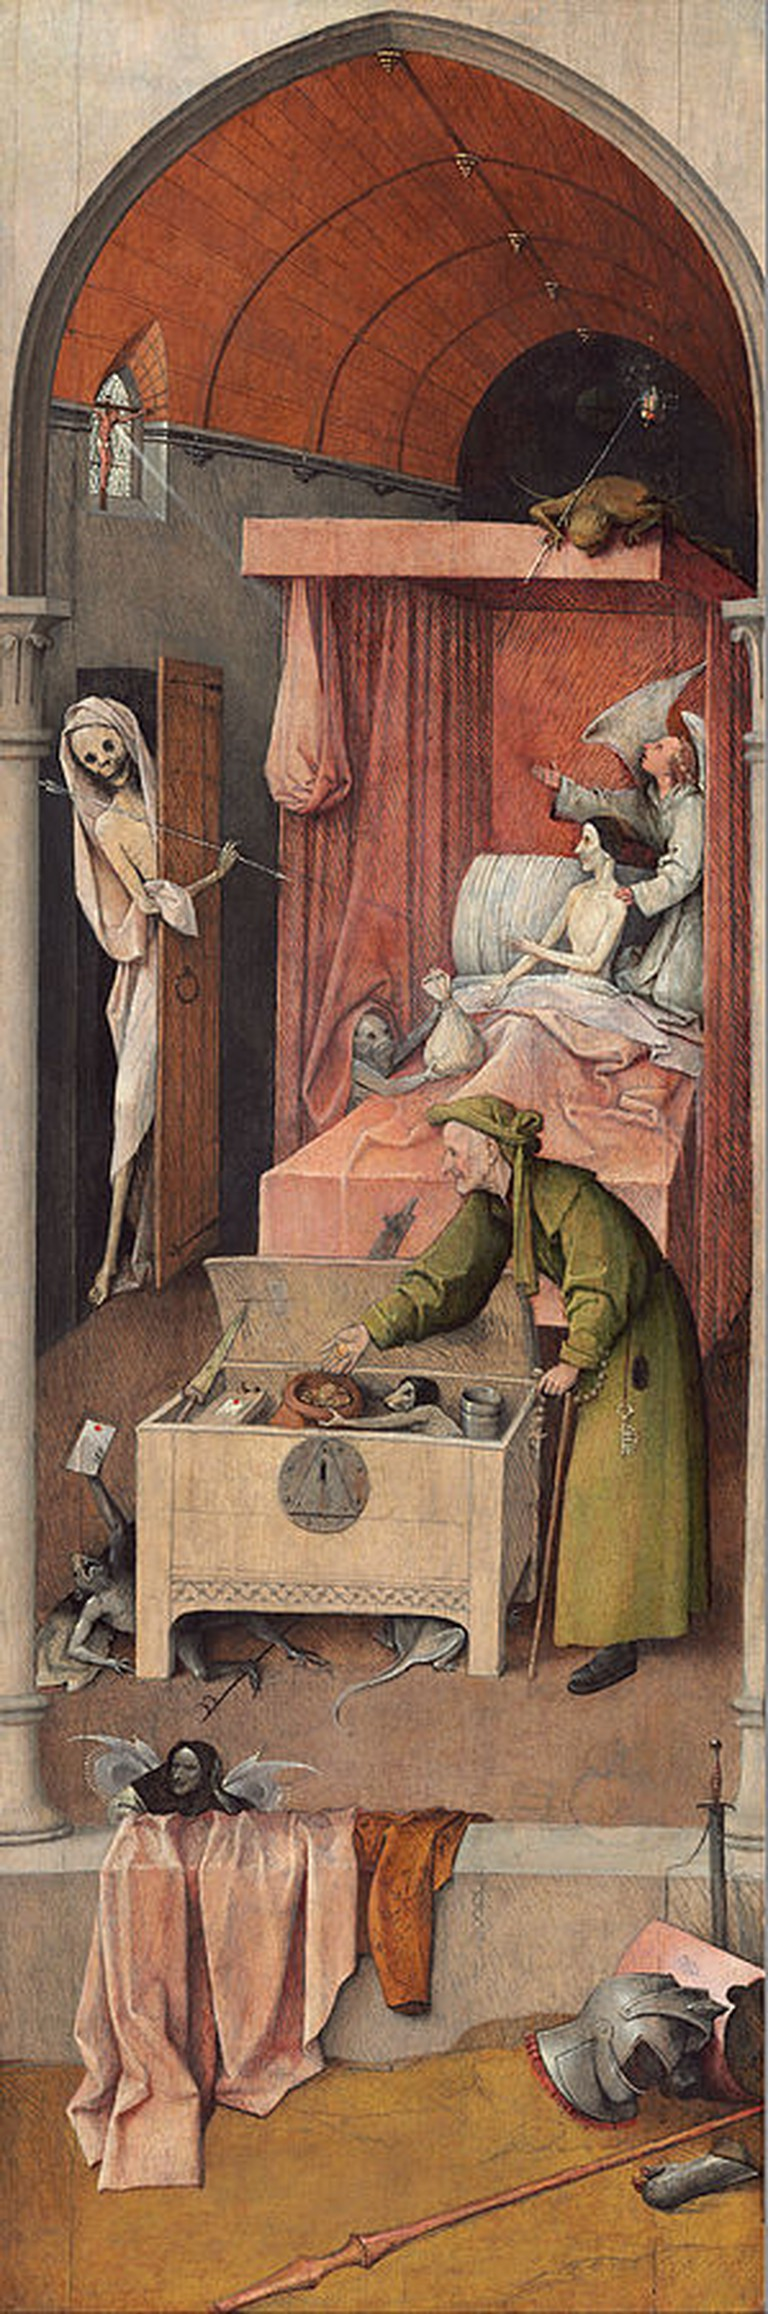 Hieronymus Bosch, Death and the Miser, oil on panel, 93 x 31 cm, National Gallery of Art, Washington D.C., c. 1485-1490 | © DcoetzeeBot/WikiCommons